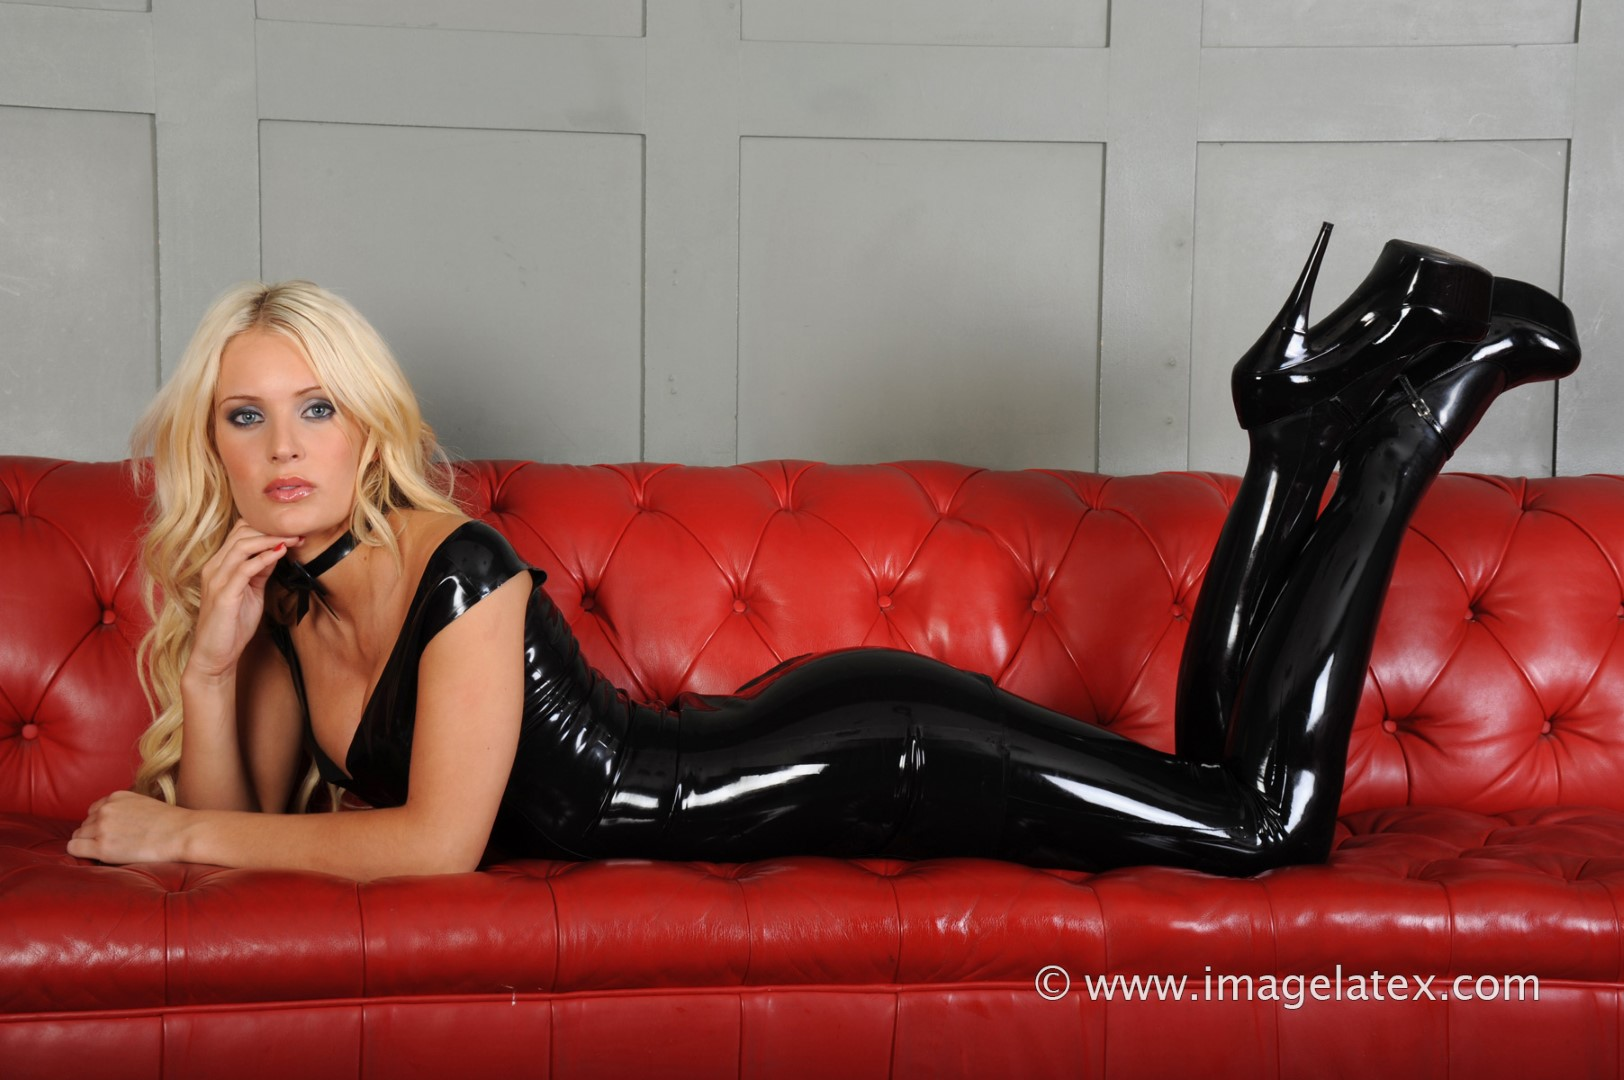 beautiful blonde alessandra poses on a couch in skin tight shiny